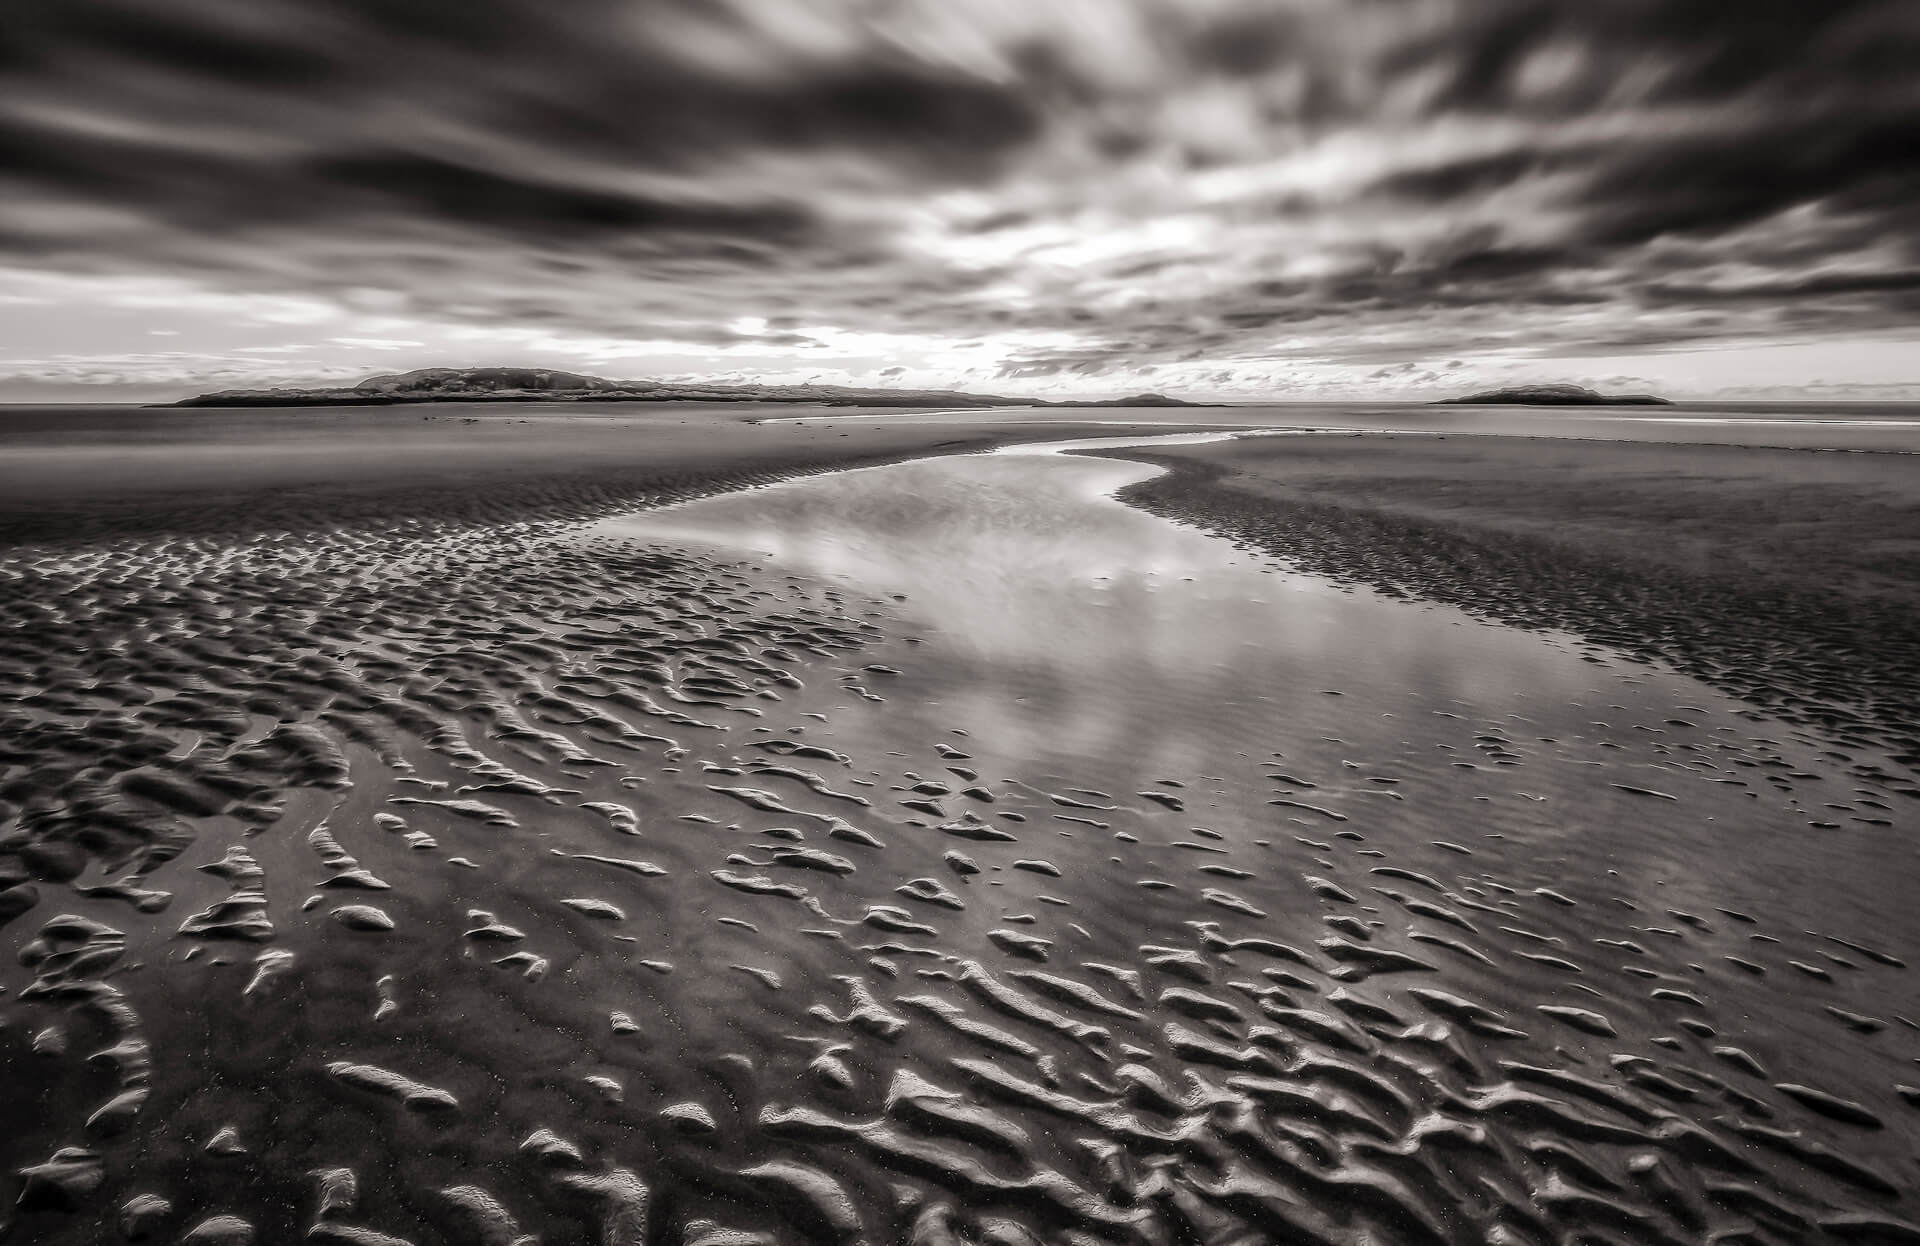 Scott Snyder Photography: Pemaquid Journey, long exposure, landscape photography, beach photography, black and white